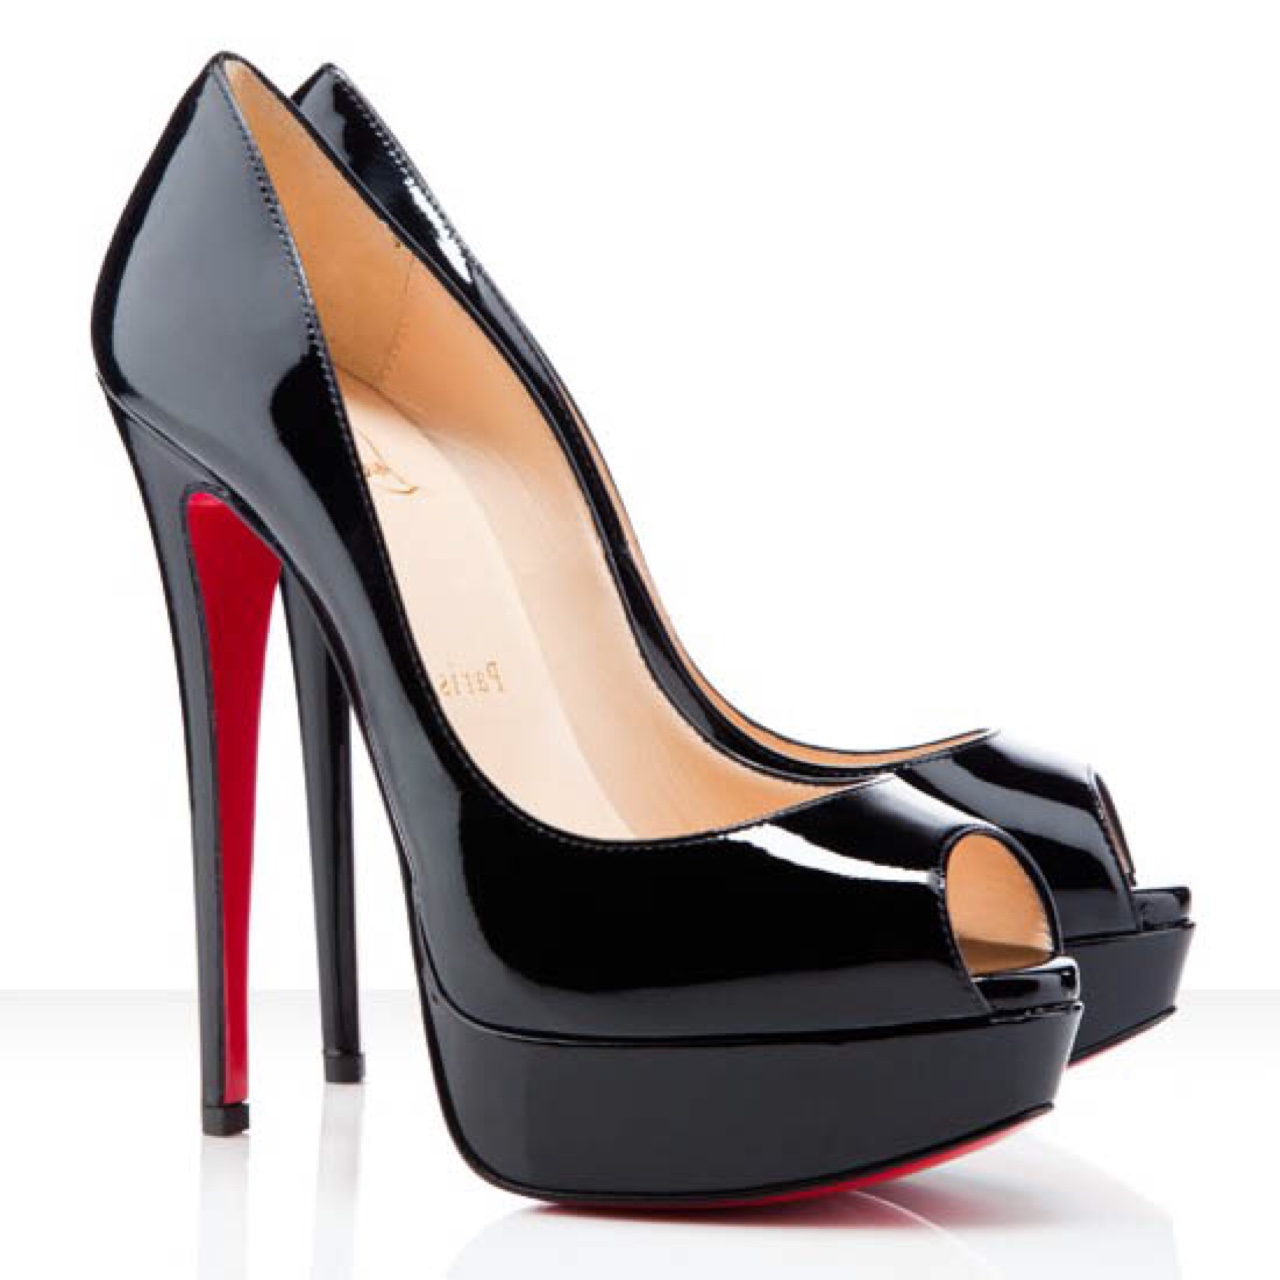 huge selection of ae9cd ead32 CHRISTIAN LOUBOUTIN Lady Peep Patent leather 150mm ...